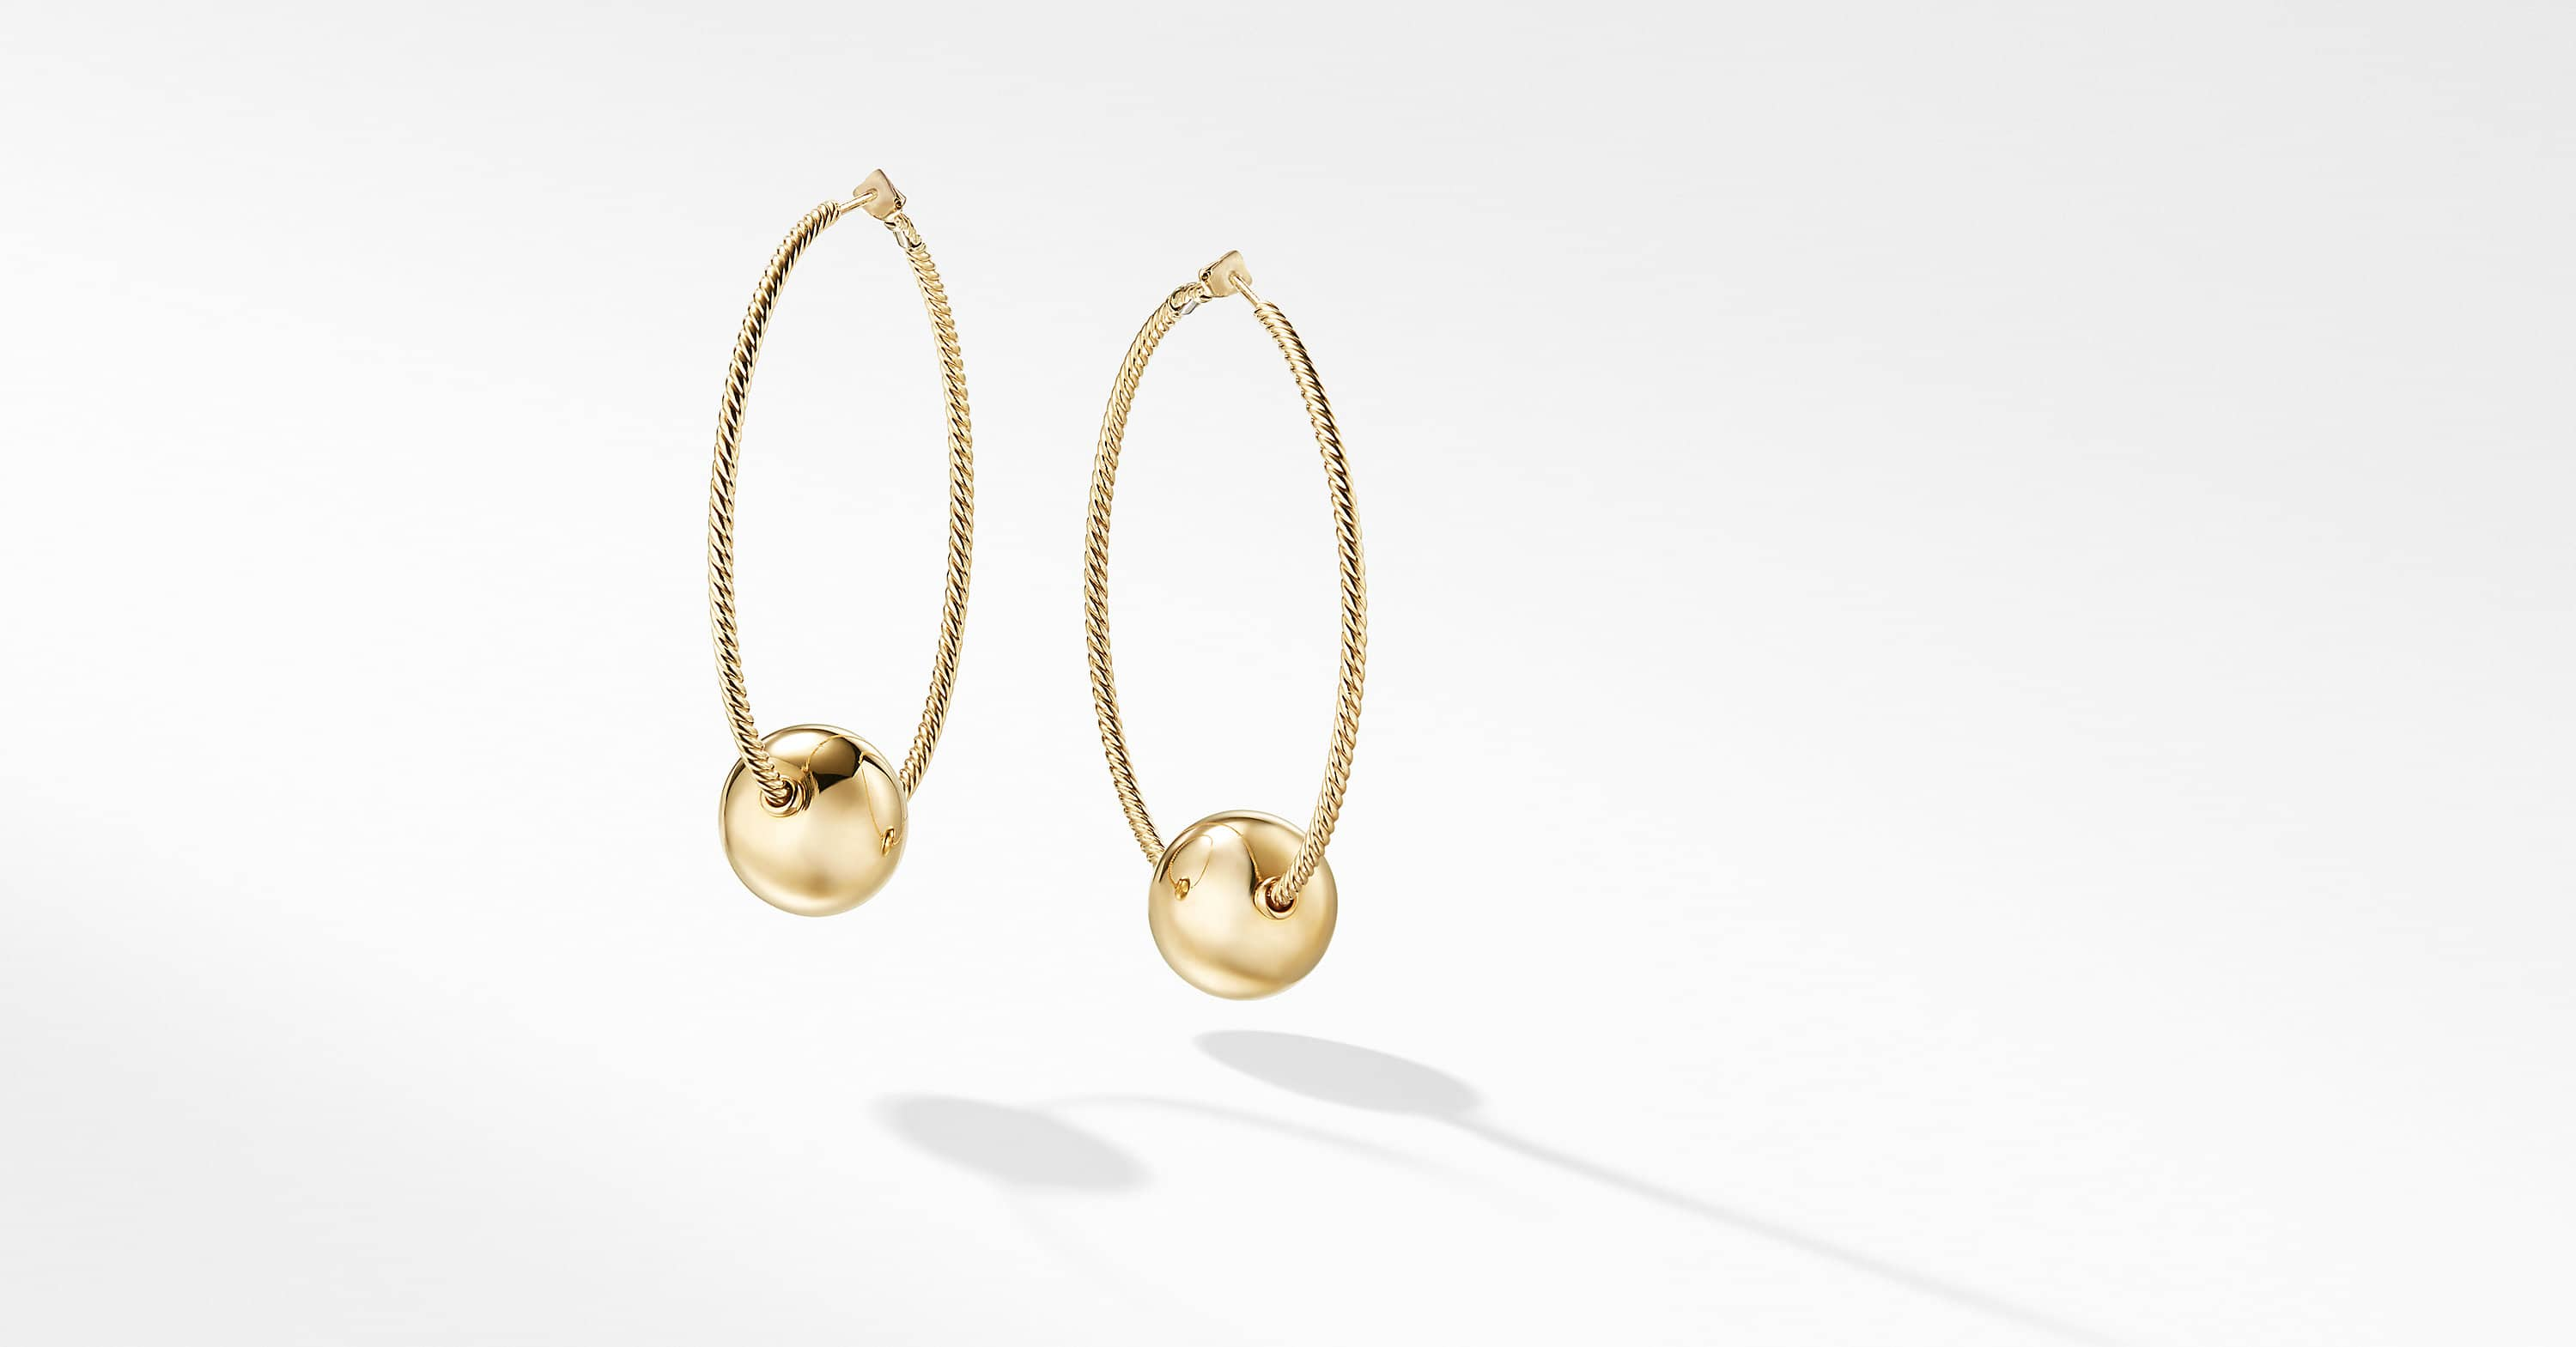 Solari Large Hoop Earrings with Pearls in 18K Gold